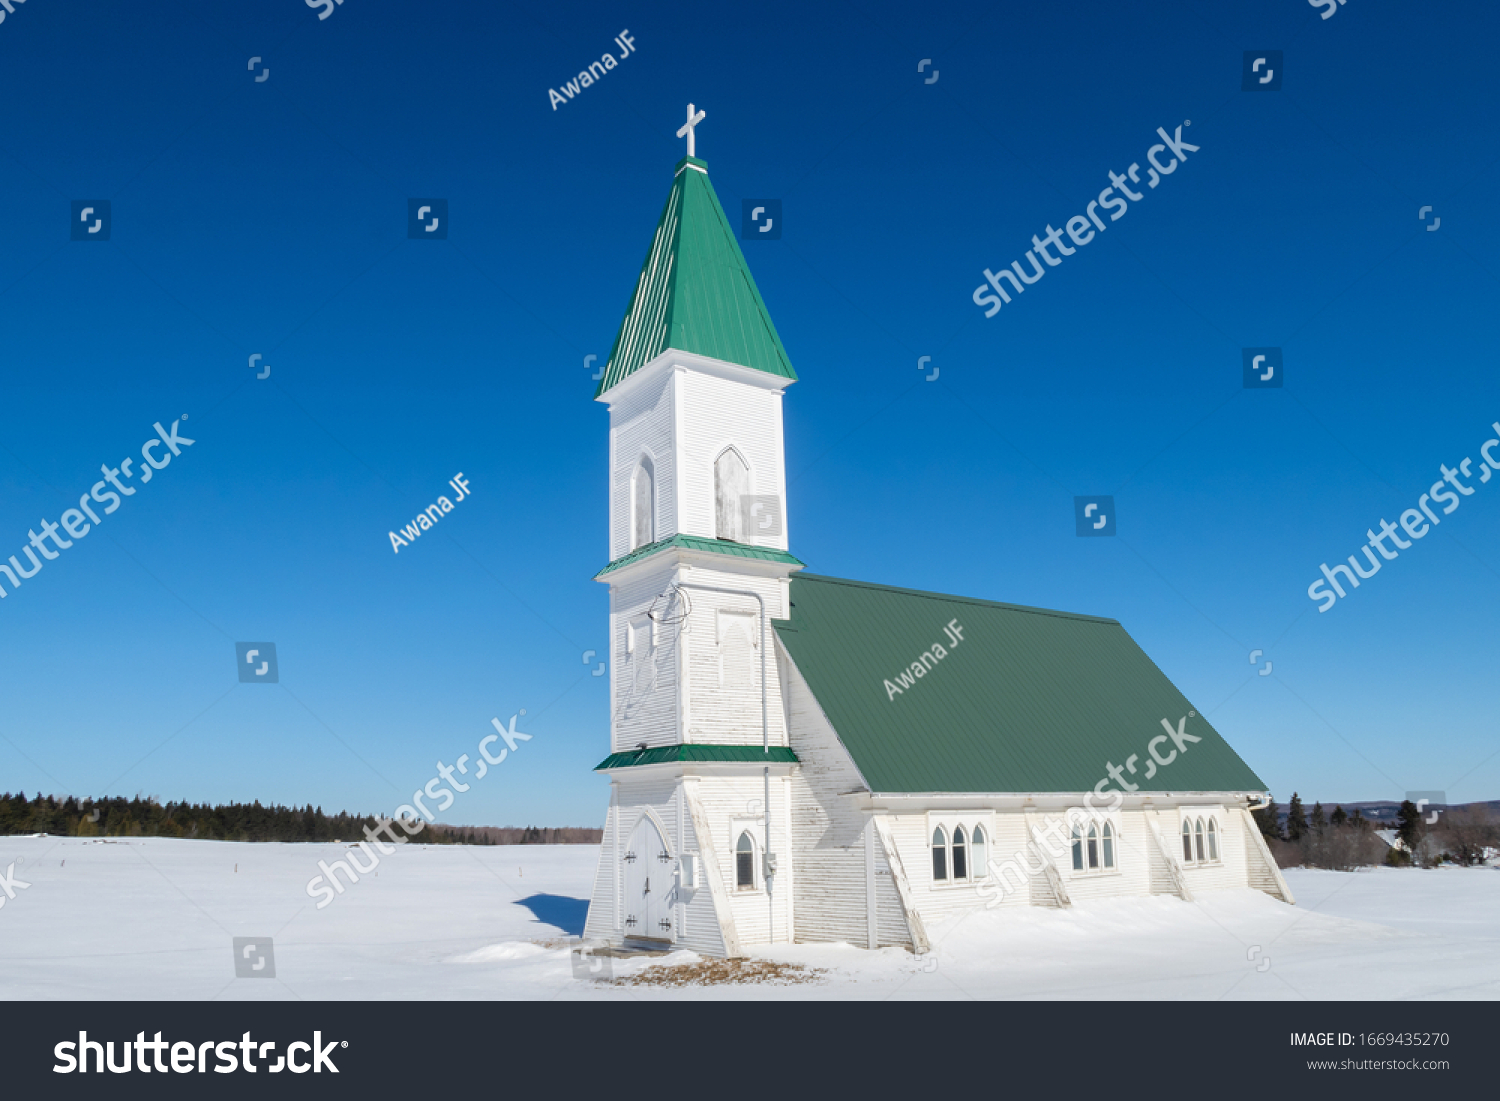 stock-photo-winter-view-of-christ-church